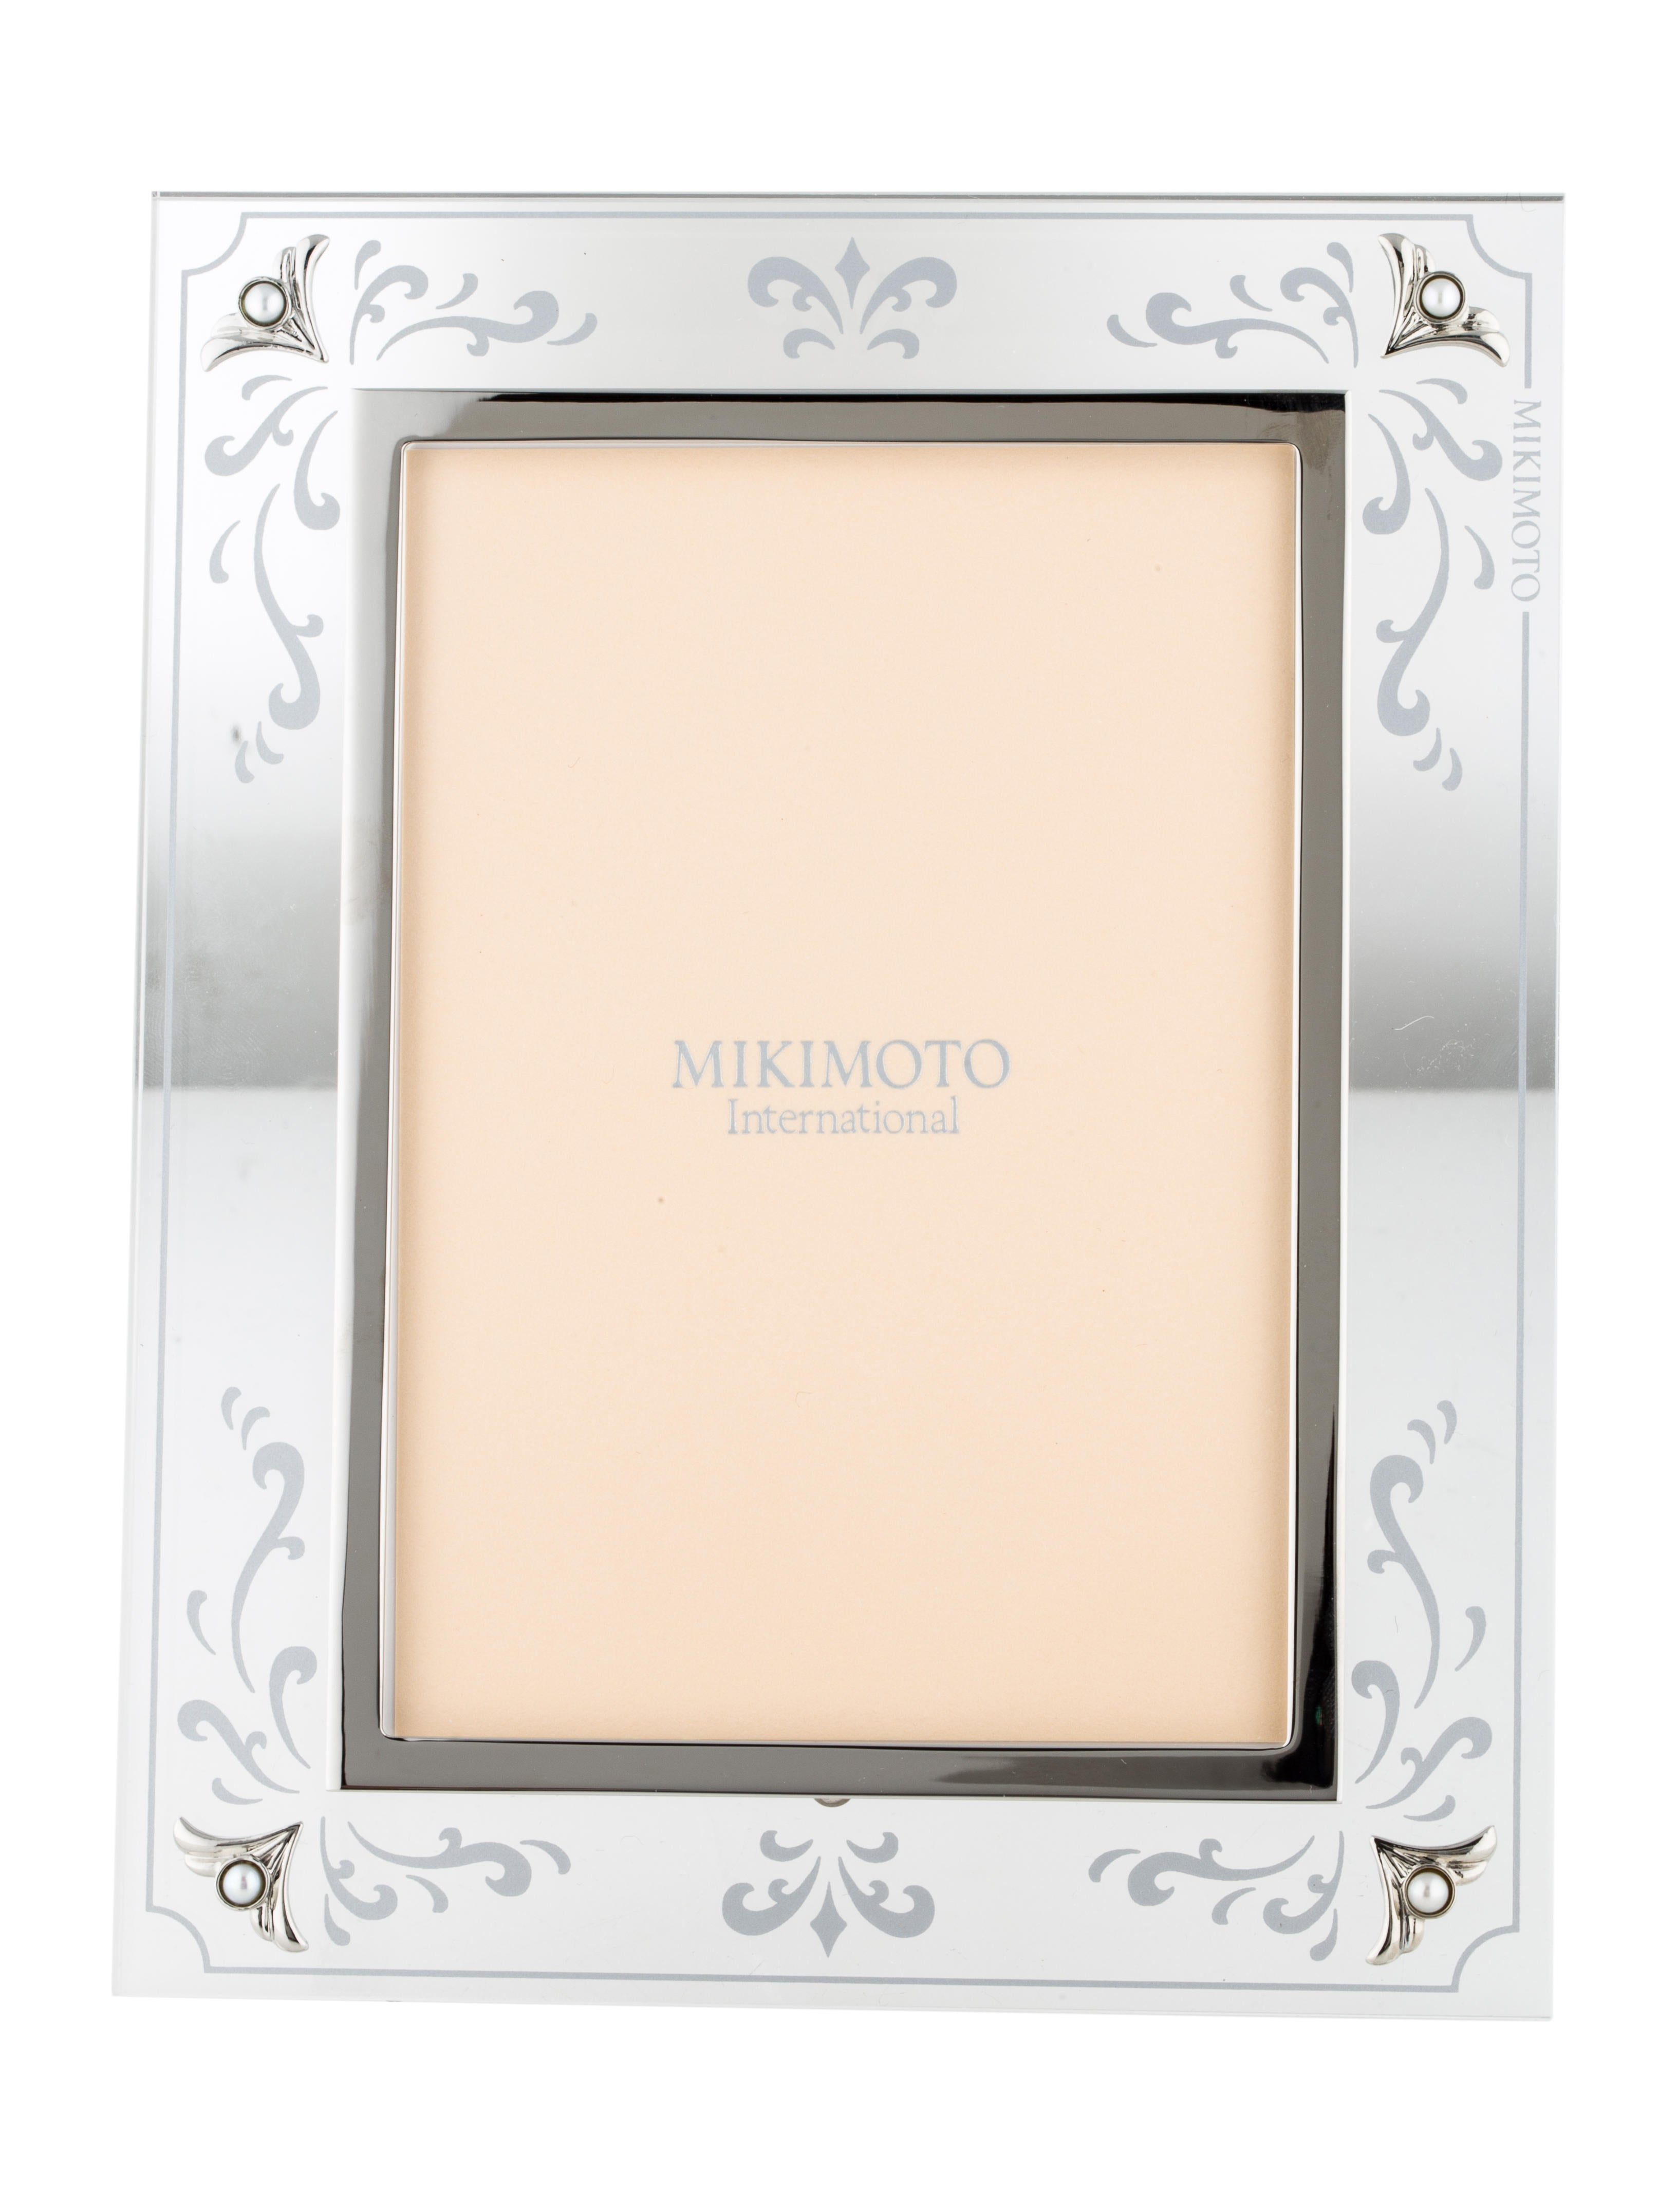 Mikimoto Frame - Decor And Accessories - MIK20235   The RealReal